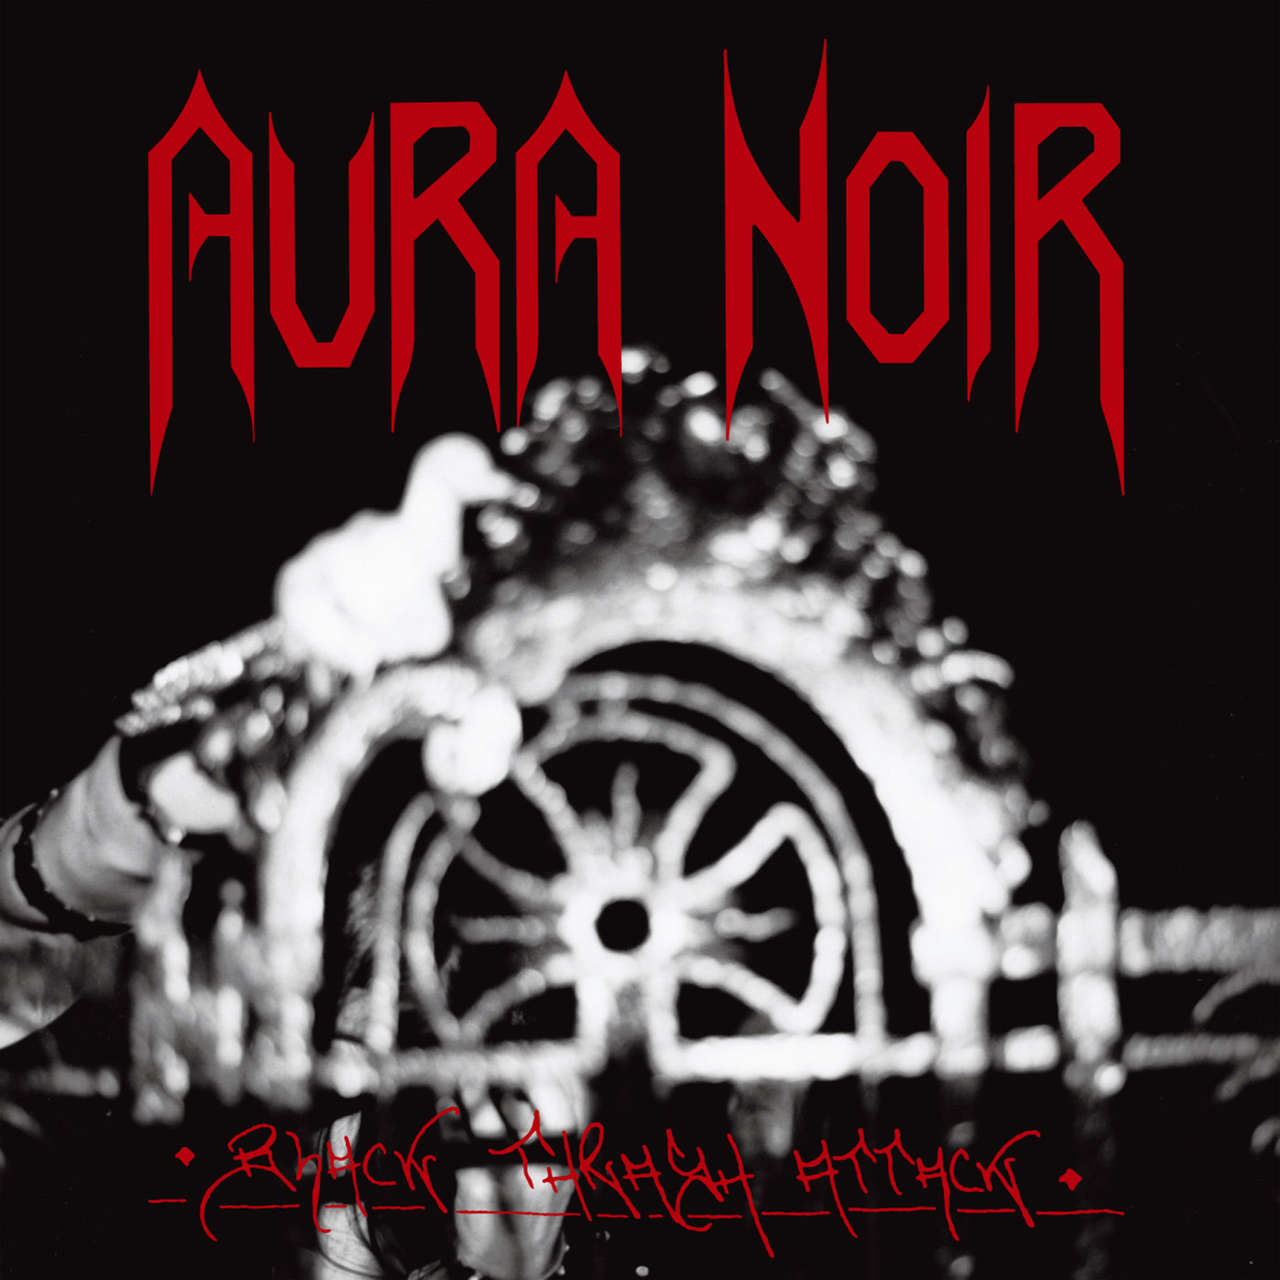 Aura Noir - Black Thrash Attack (2011 Reissue) (CD)